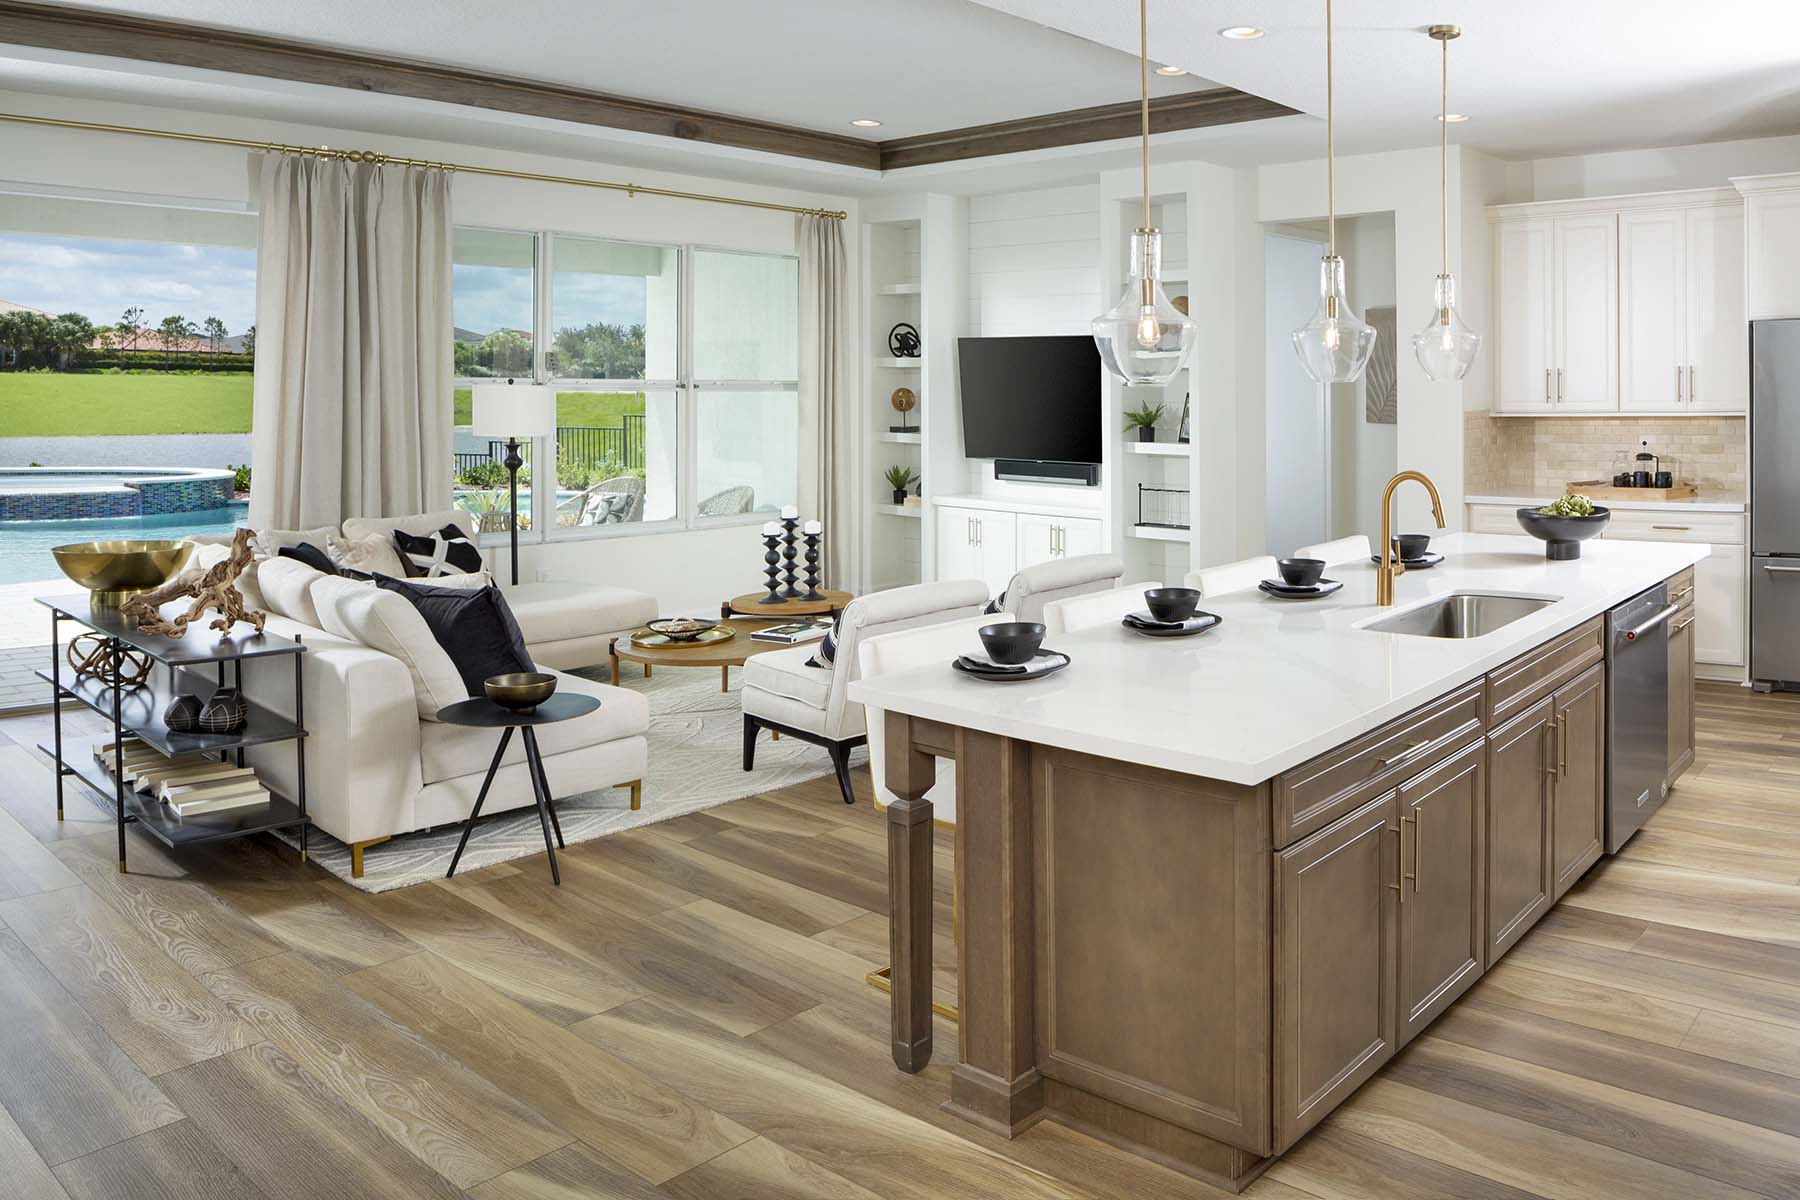 Dahlia Plan Greatroom at Tradition - Manderlie in Port St. Lucie Florida by Mattamy Homes